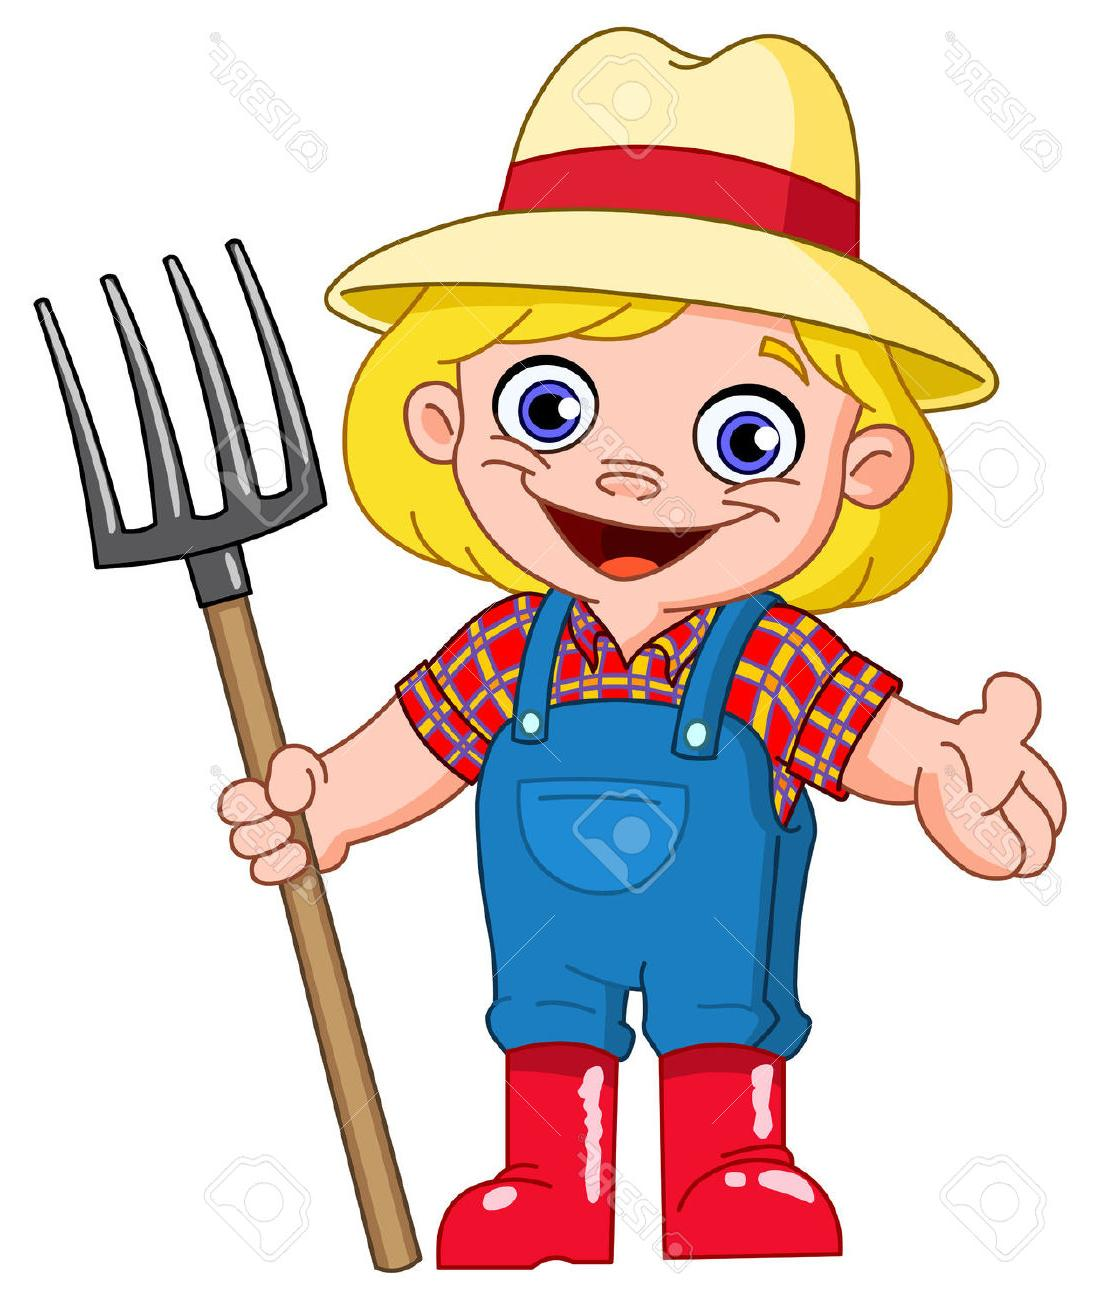 1100x1300 Top Old Cartoon Farmer Girl Vector Cdr Free Vector Art, Images